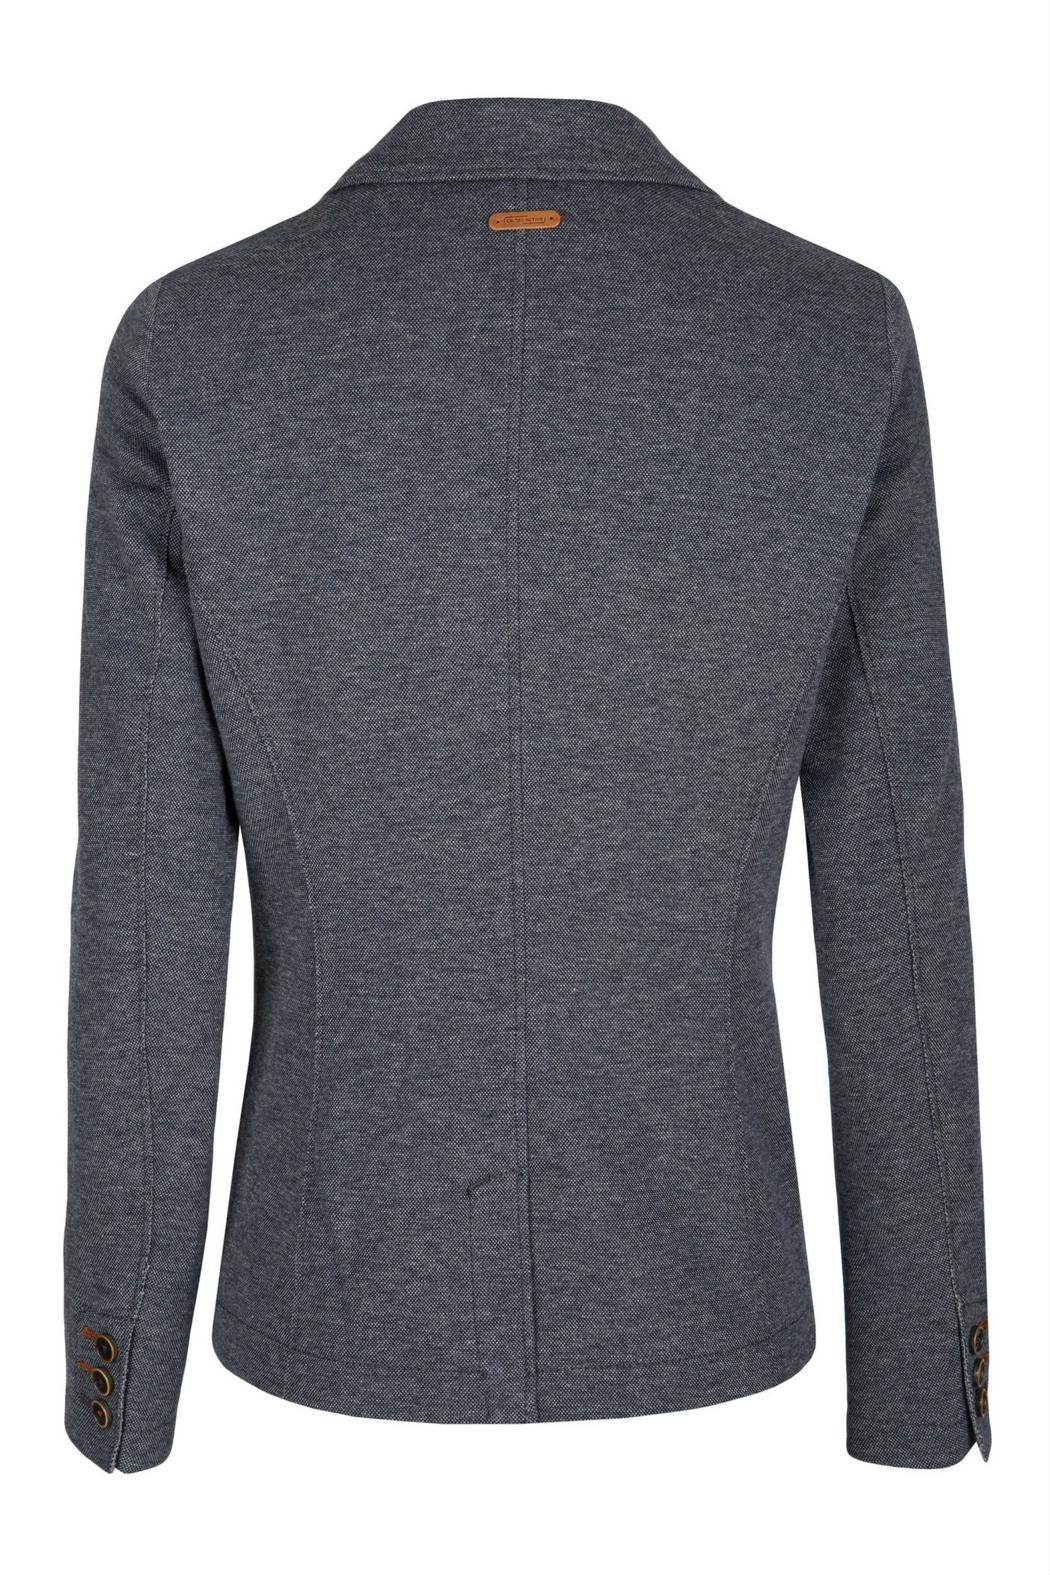 Camel Active Casual Blazer - Front Full Image